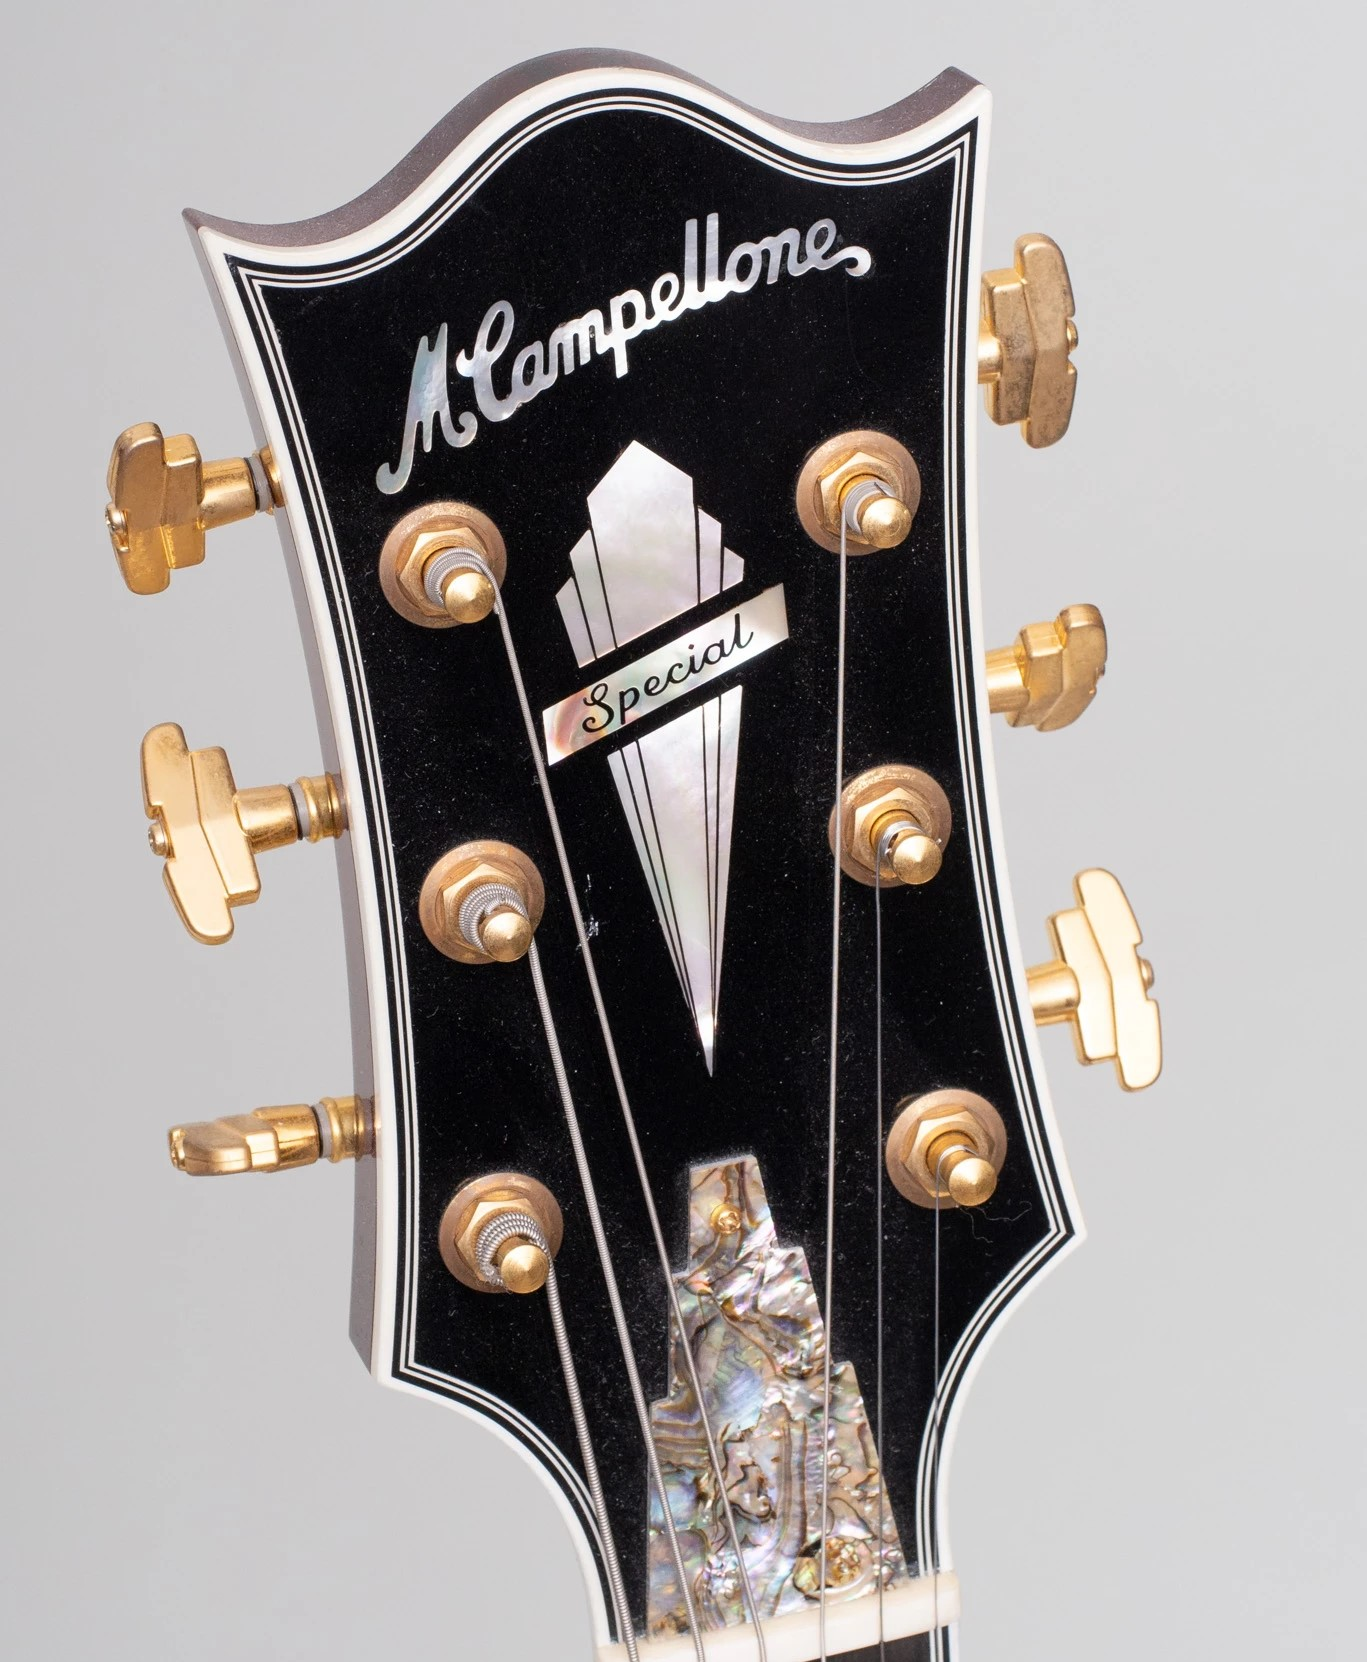 Campellone Choice - New Standard or Used Special?-campellone-special-headstock-f-2-jpg